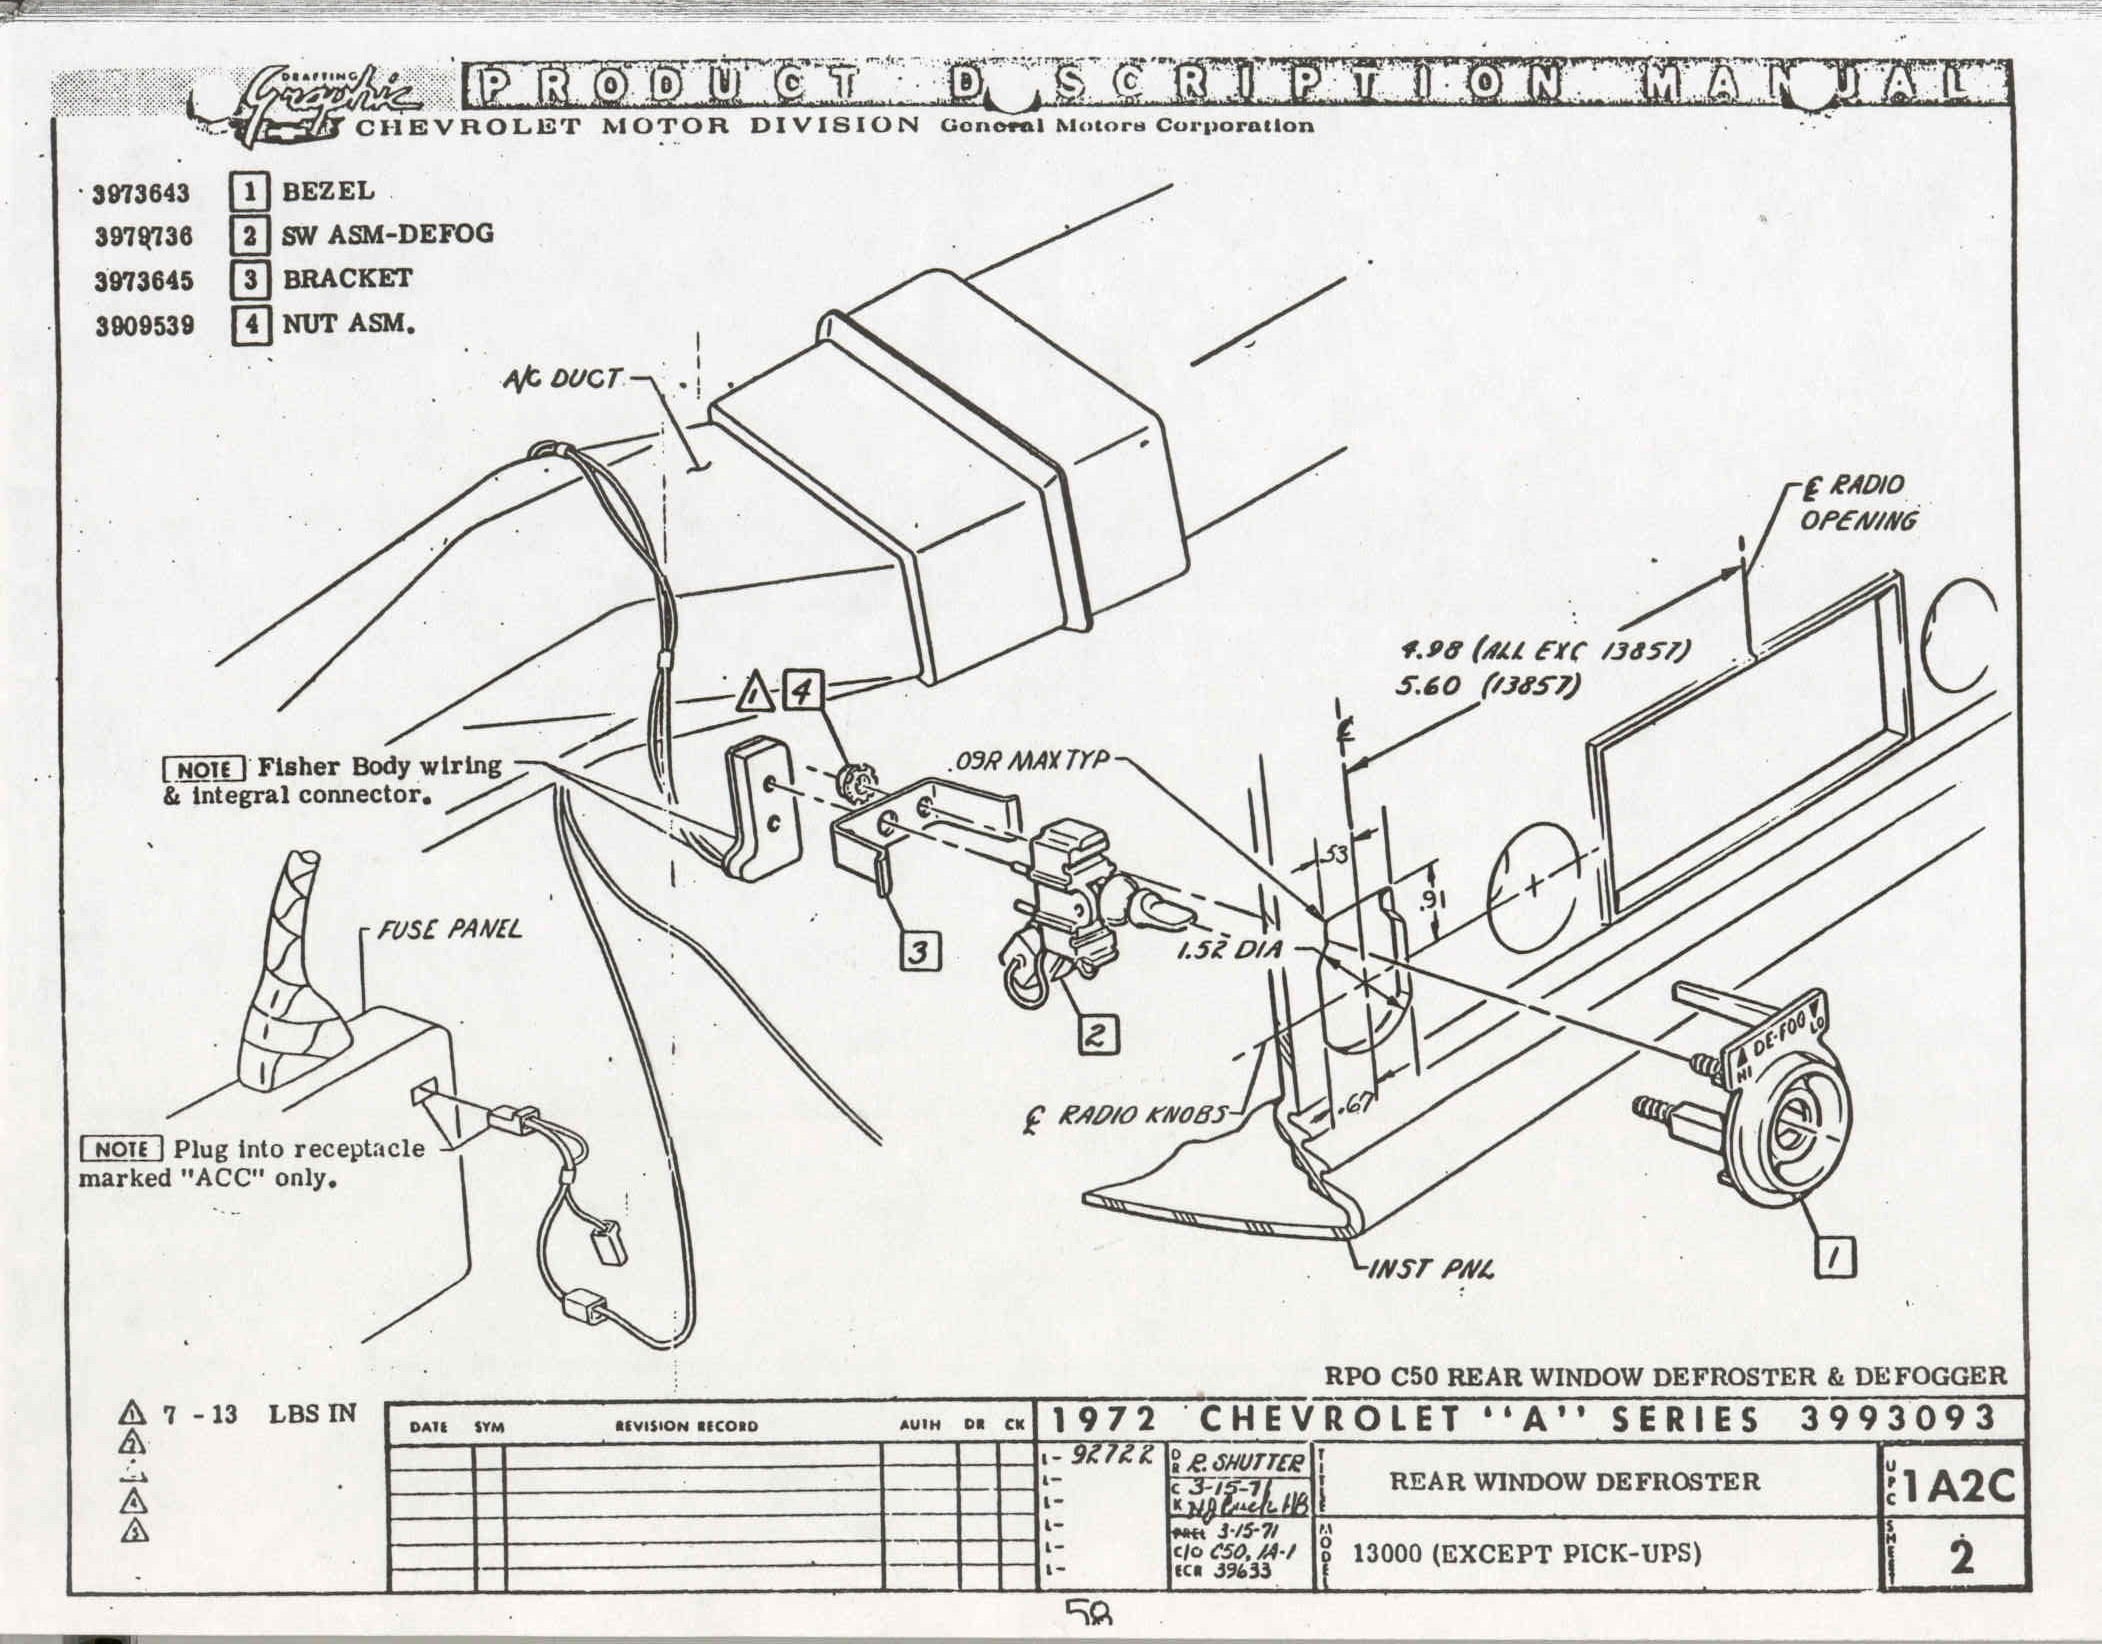 Convertible top switch - up/down? - Chevelle Tech on 1975 corvette stingray wiring diagram, 1972 corvette wiring diagram, 1972 monte carlo wiring diagram, 1972 camaro wiring diagram, 1972 nova wiring diagram, 1972 el camino wiring diagram, 1972 impala wiring diagram, 1972 blazer wiring diagram, 72 nova wiring diagram, 1968 chevelle wiring diagram,